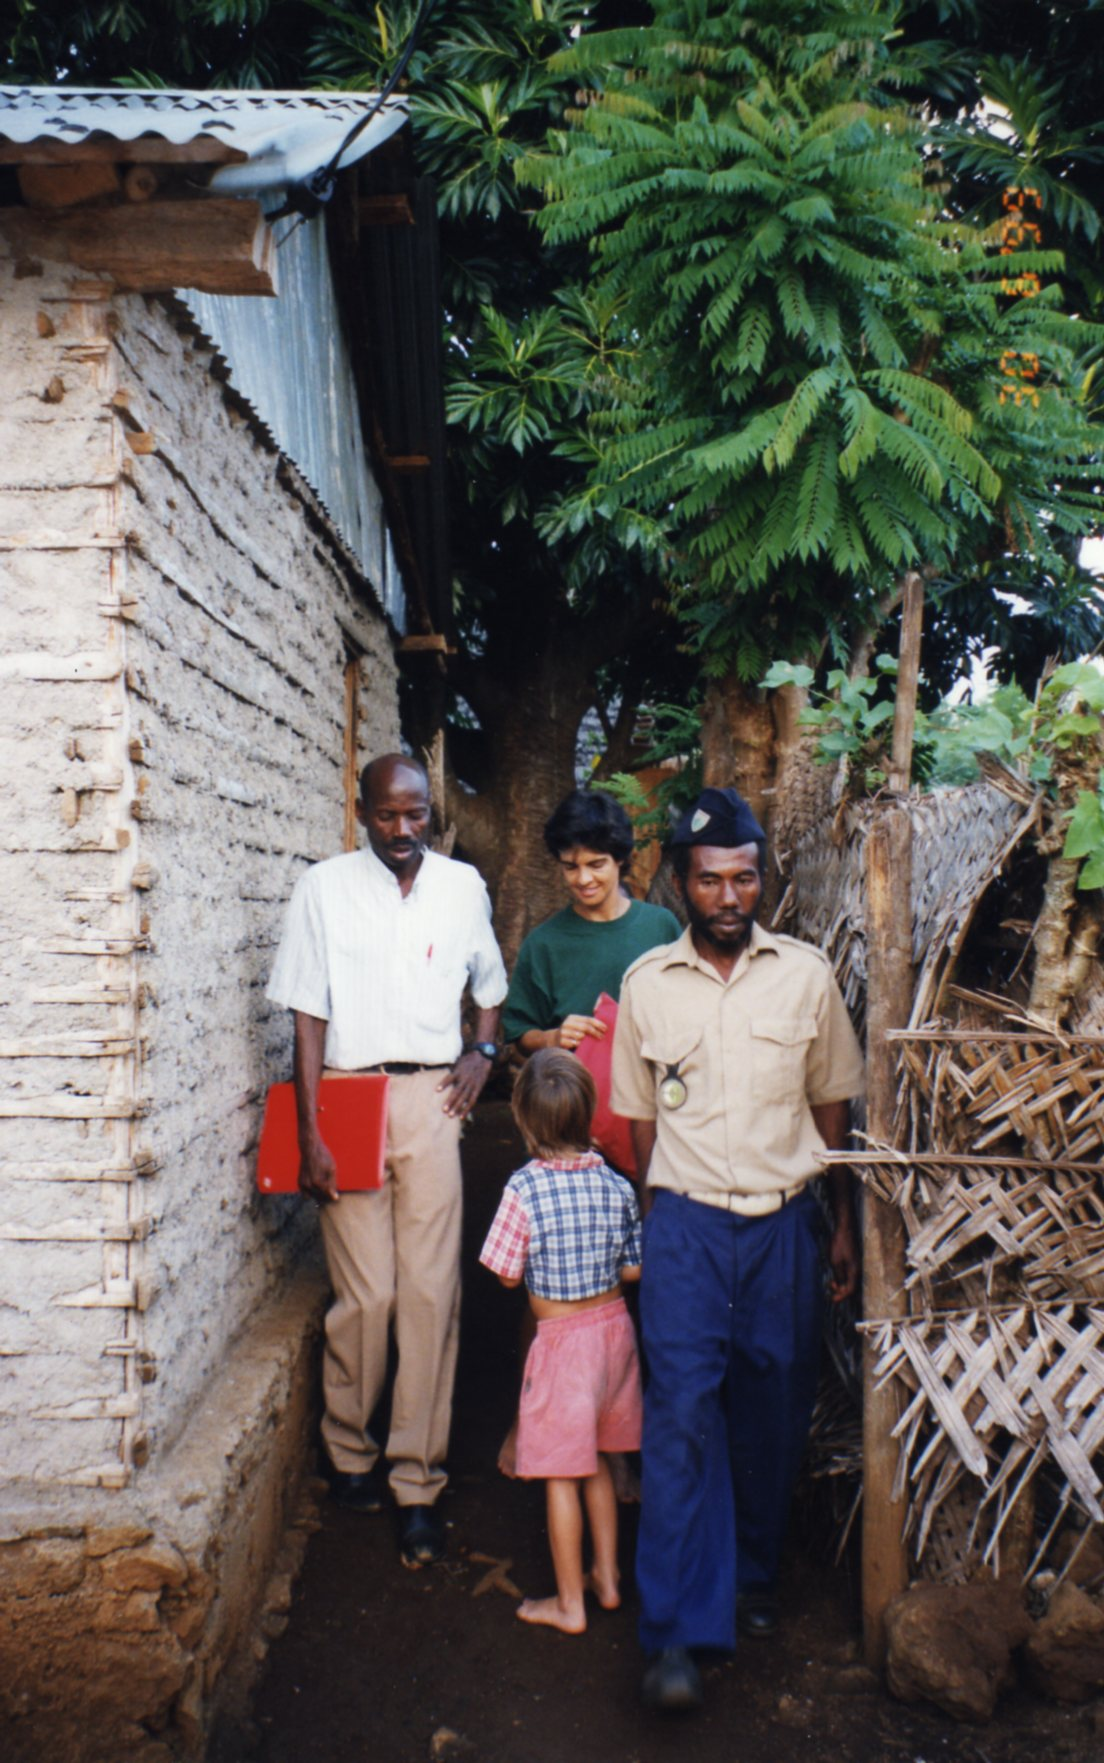 Being escorted by the officials to see their village